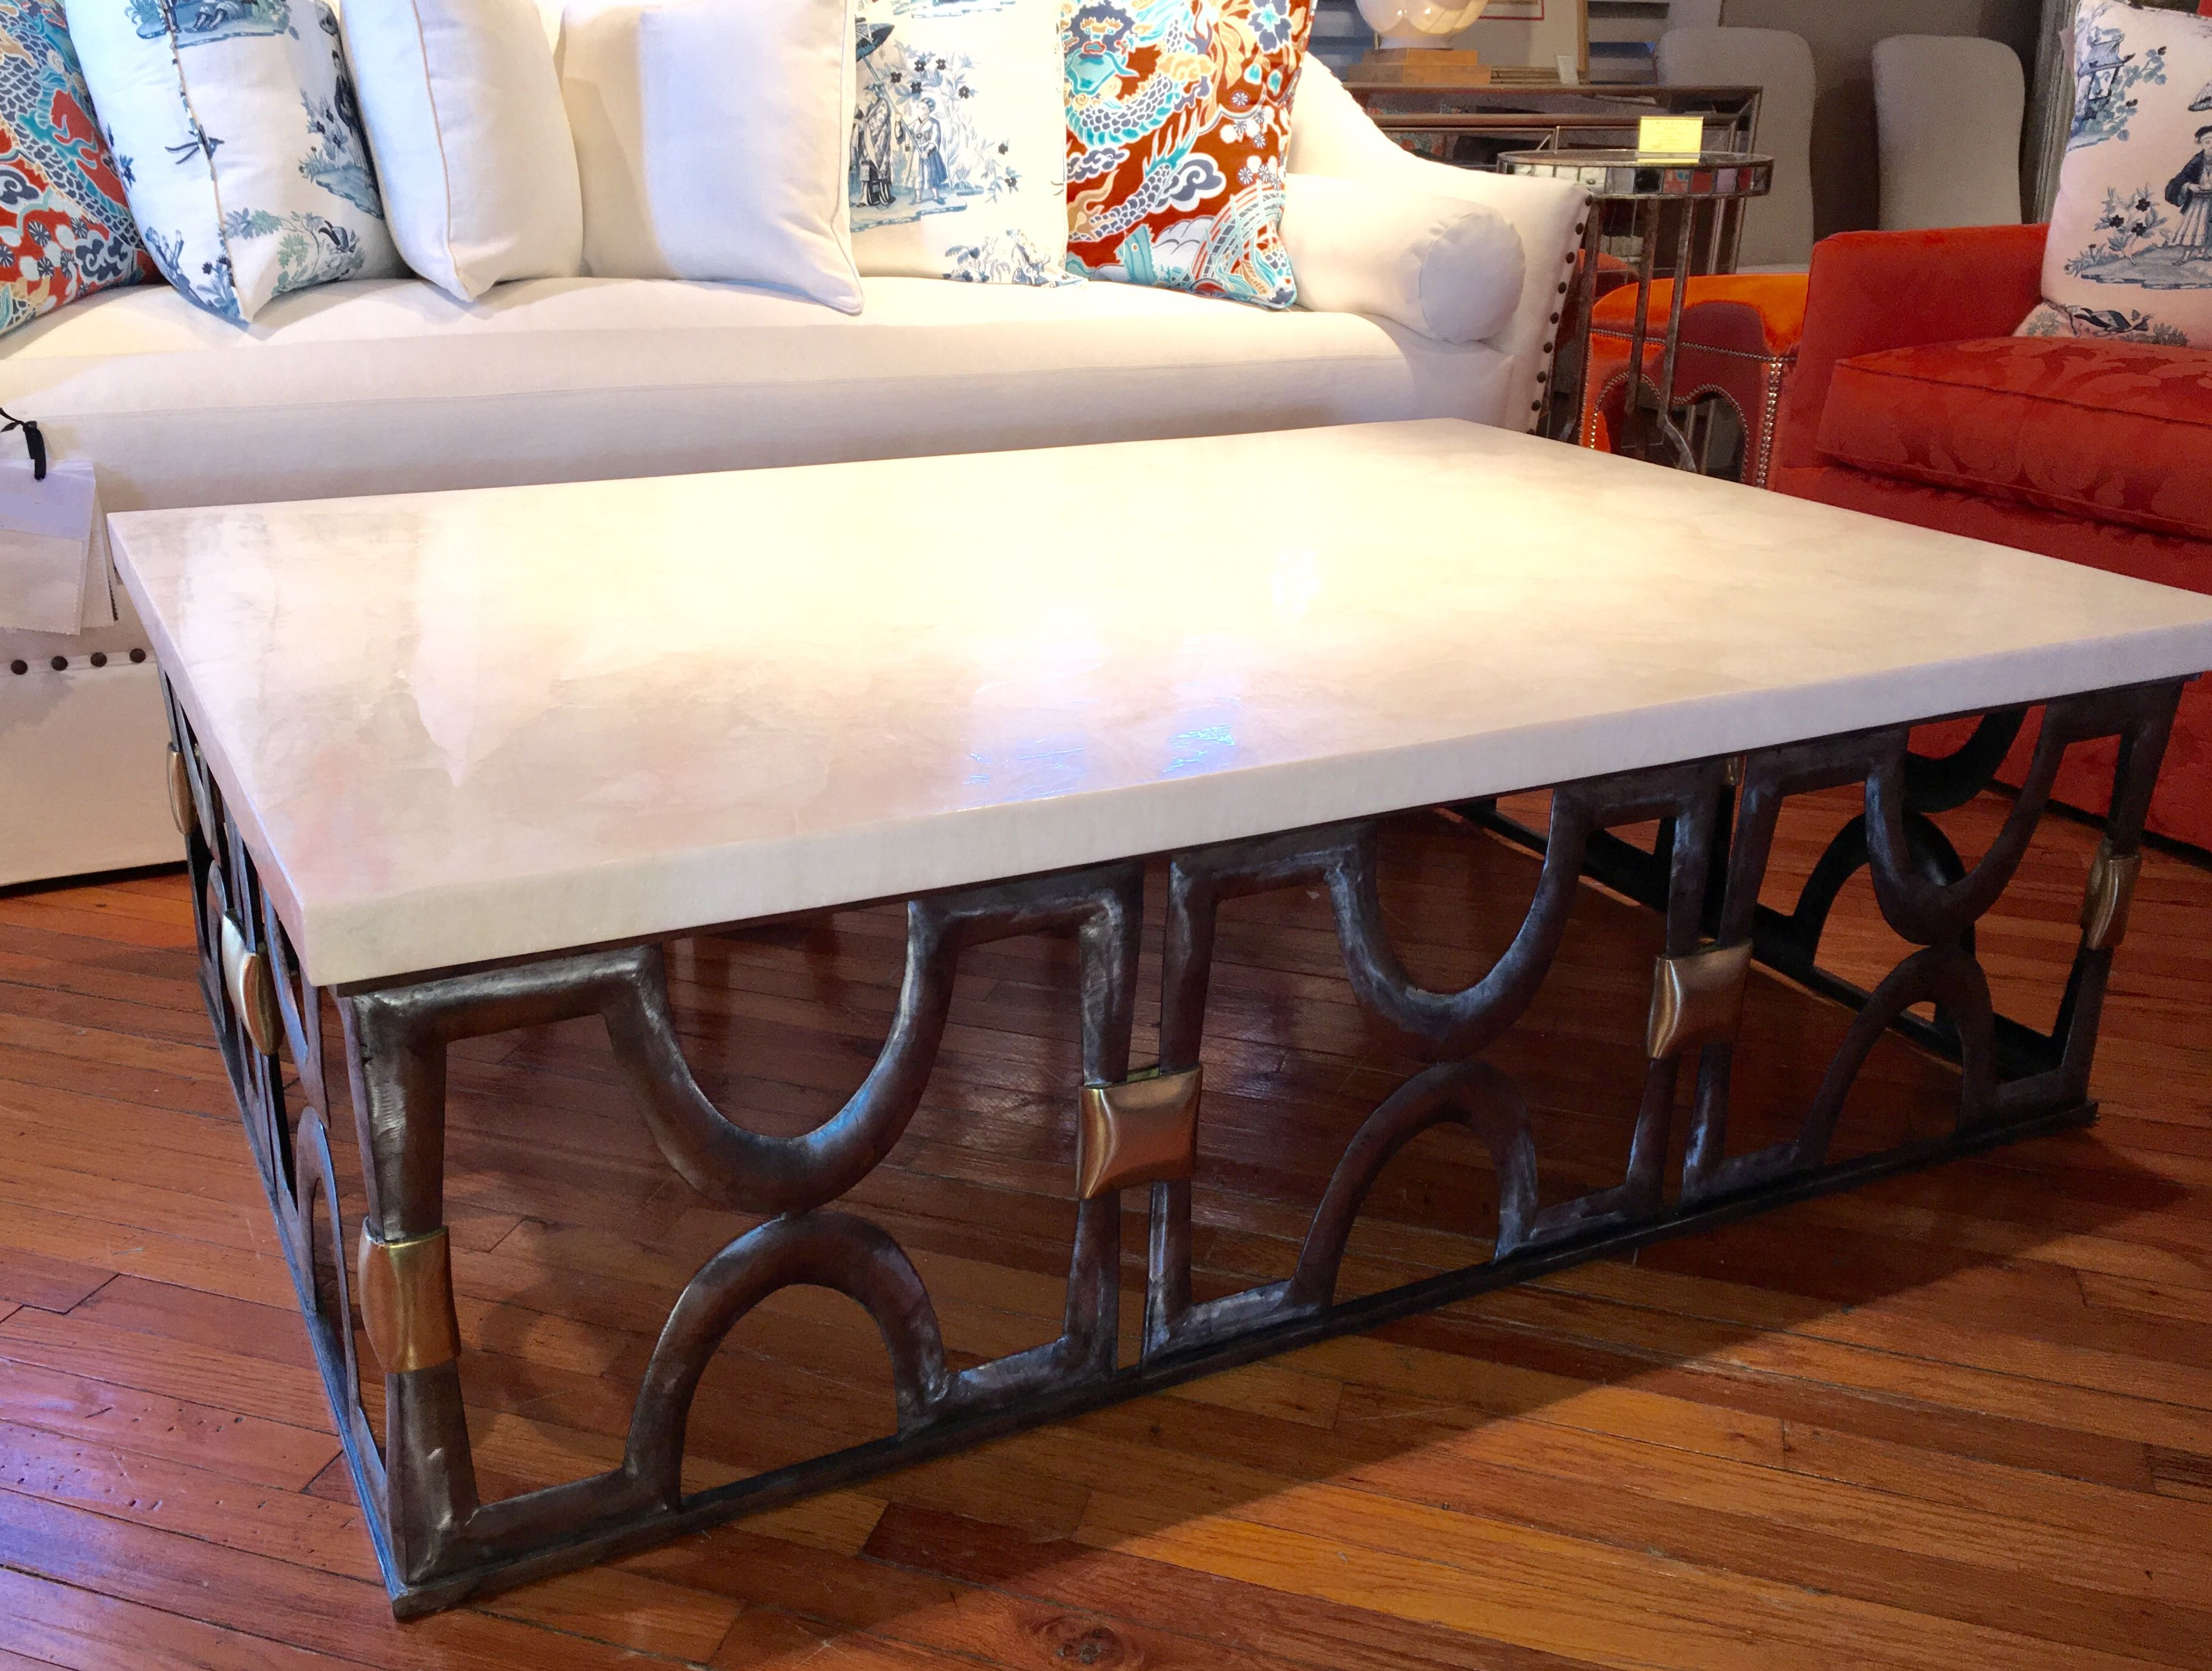 Stone Top Coffee Tables Inside Best And Newest White Onyx Stone Top Coffee Table – Mecox Gardens (View 9 of 20)